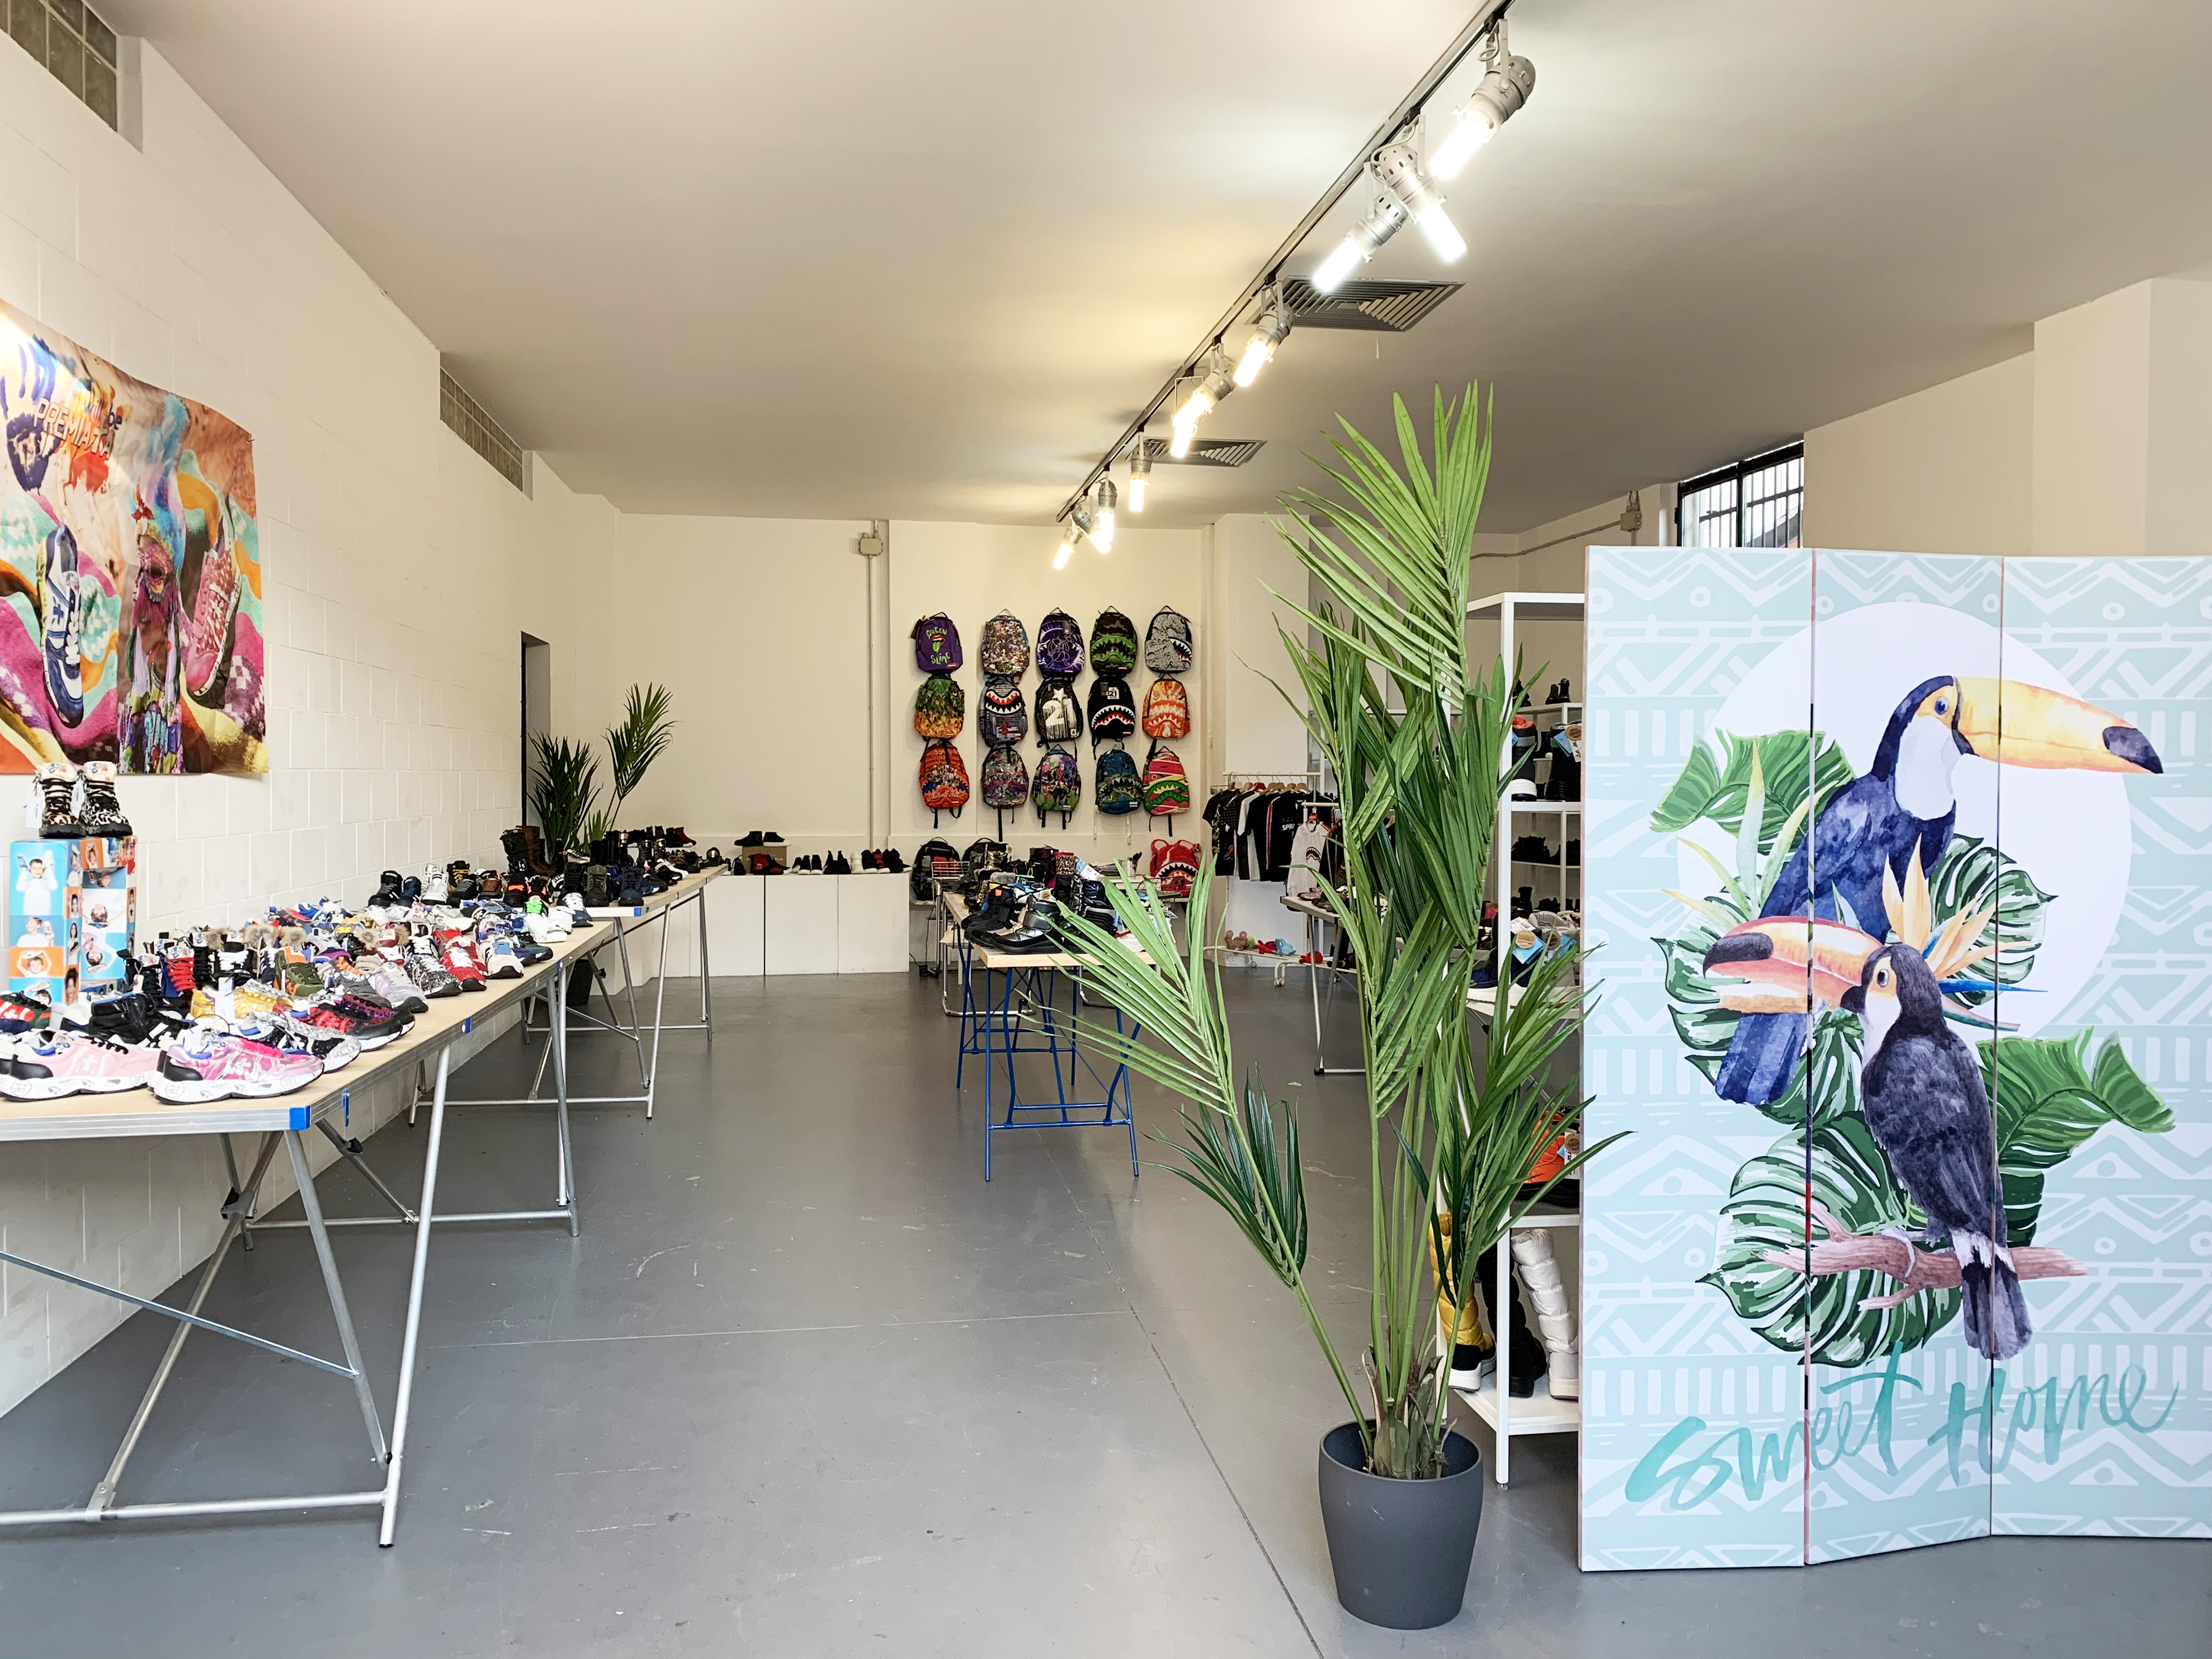 MFW KID - 01/20 - Z&S showroom  in via Tortona 31 - 1